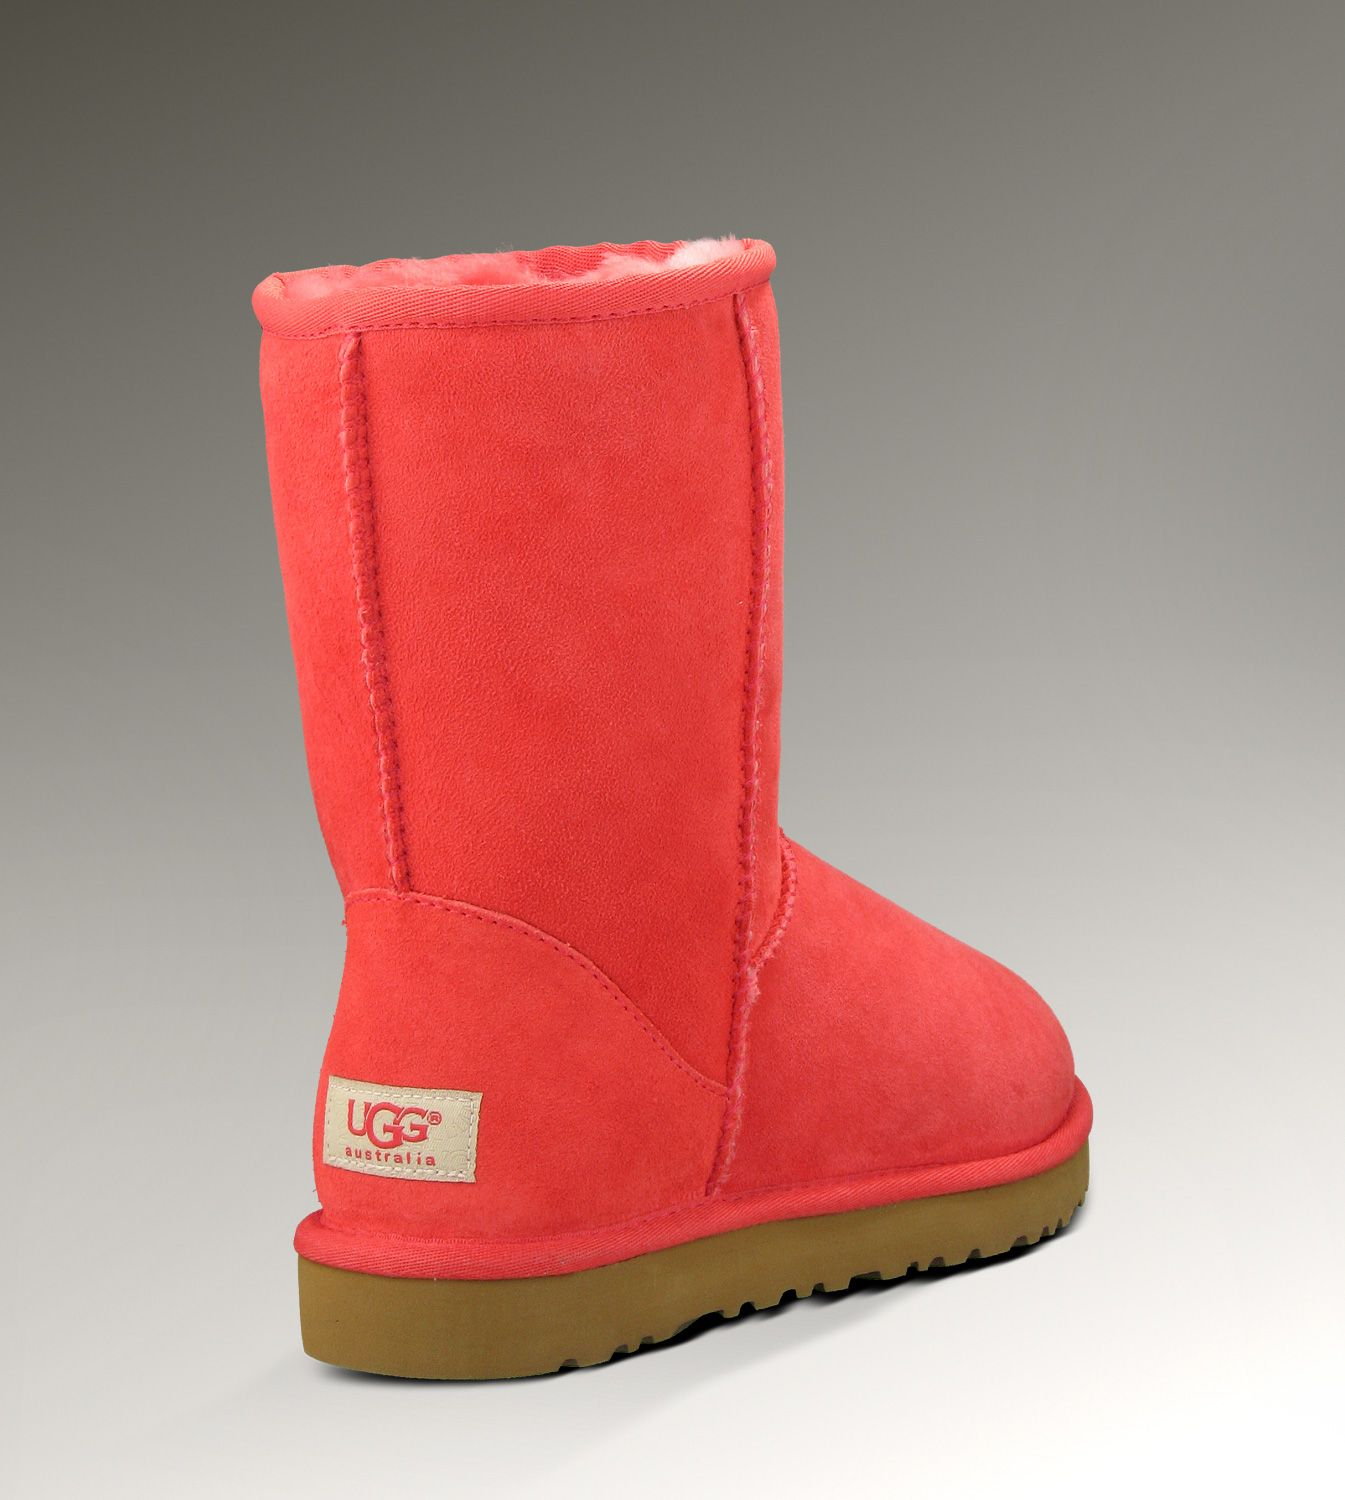 boots like ugg boots but cheaper